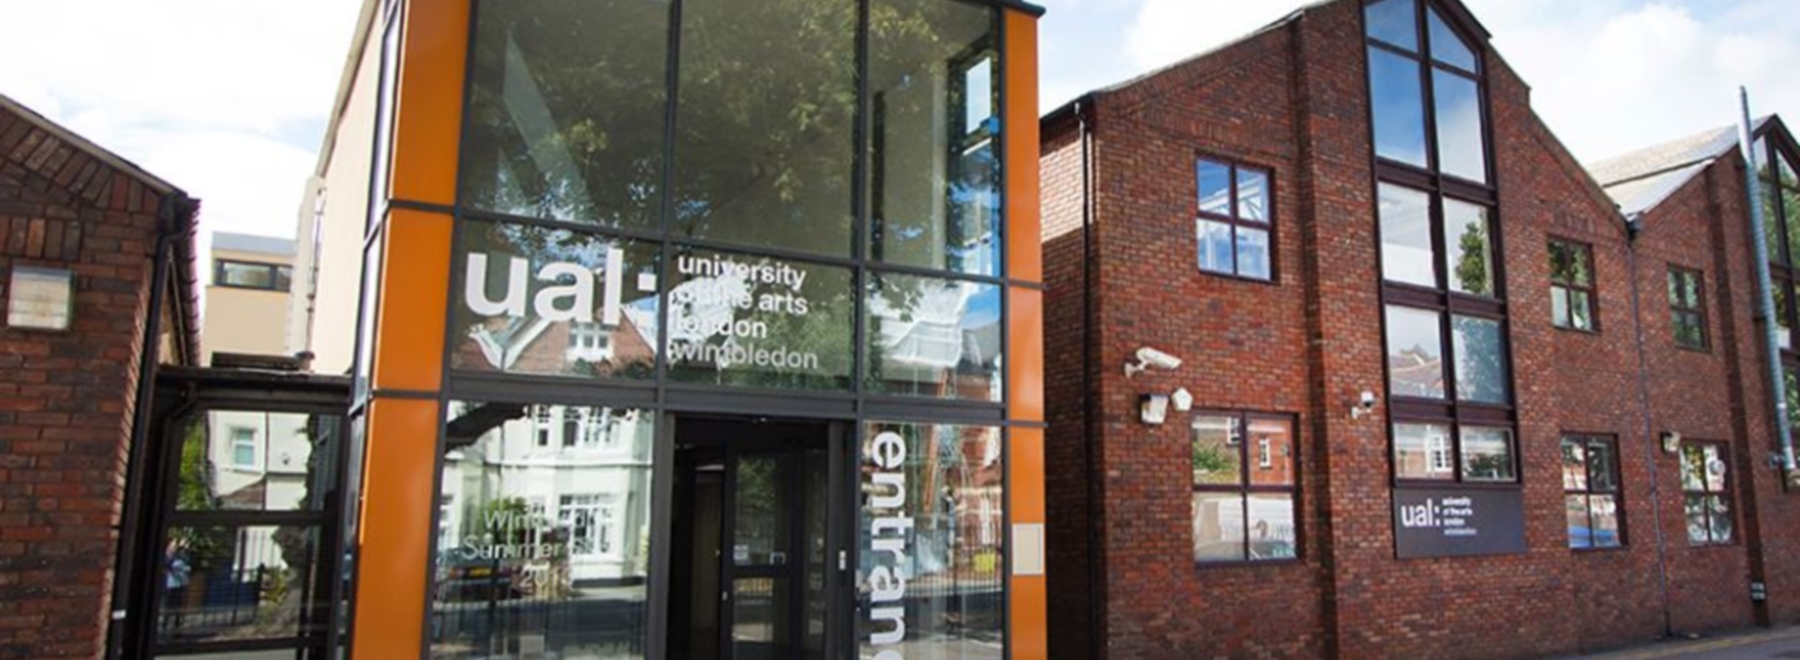 Wimbledon College of Arts, University of the Arts London header